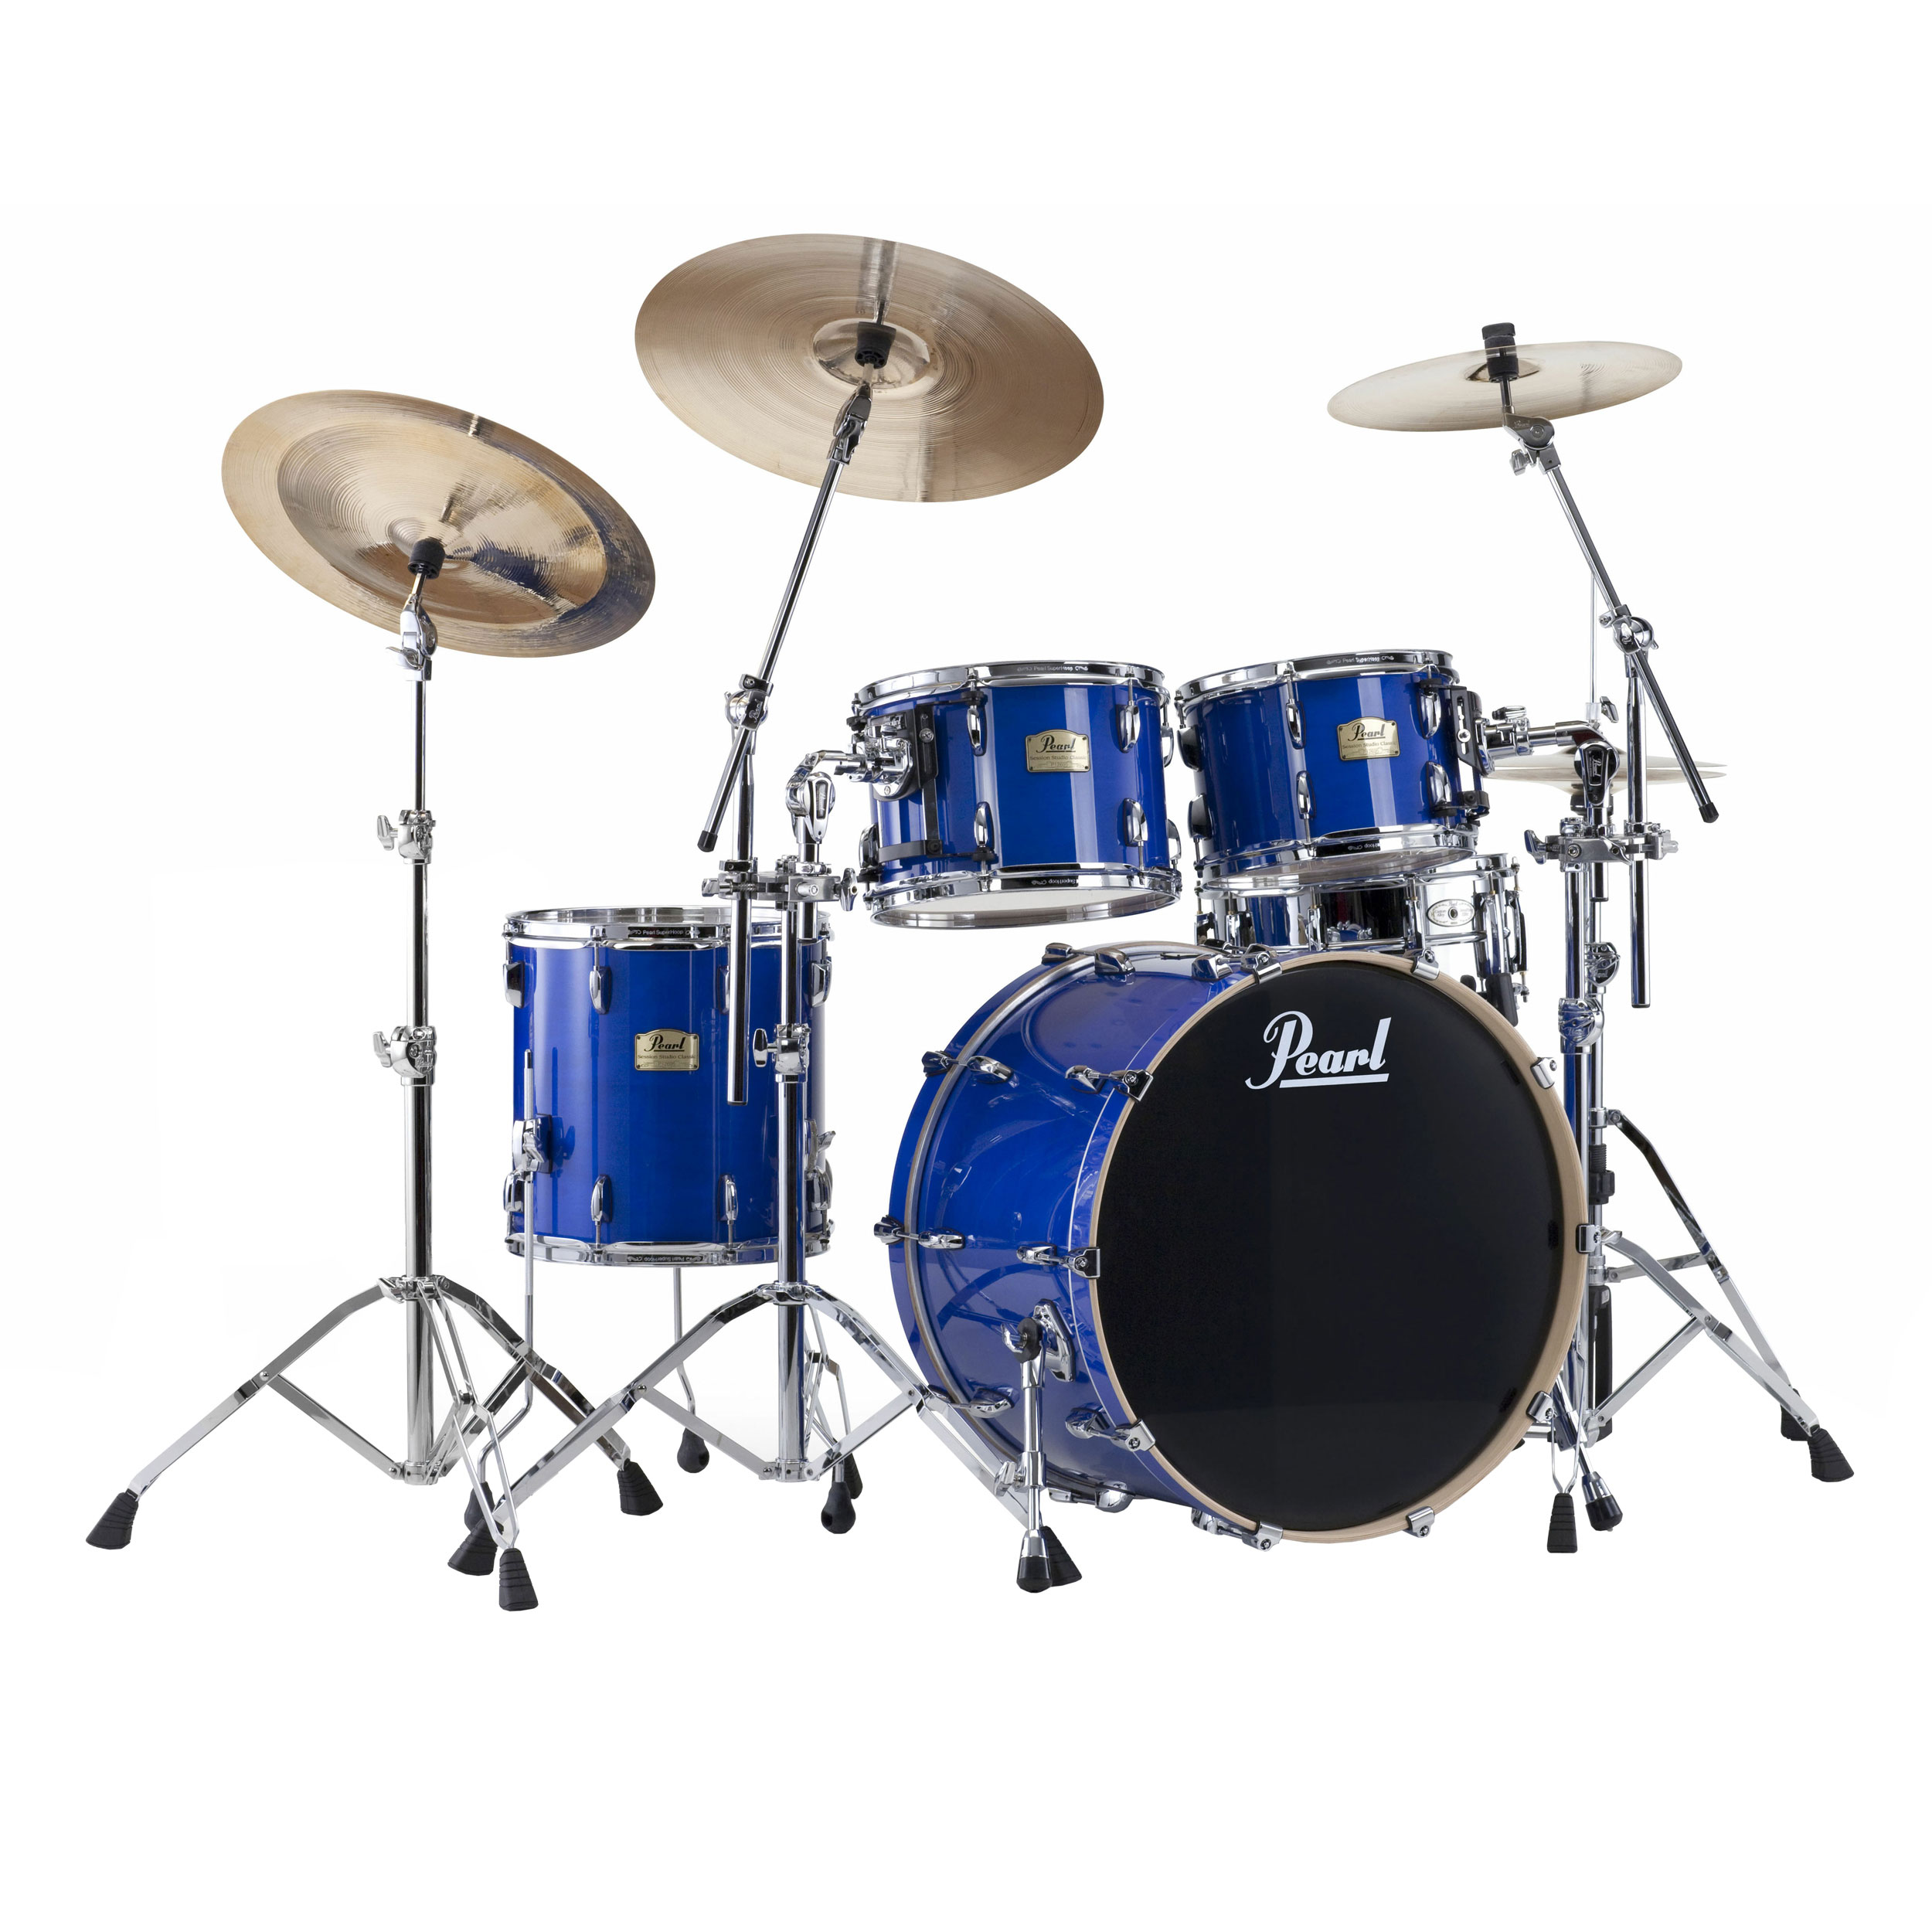 pearl studio session 4 piece drum set shell pack 22 bass 10 12 16 toms ssc924xup. Black Bedroom Furniture Sets. Home Design Ideas